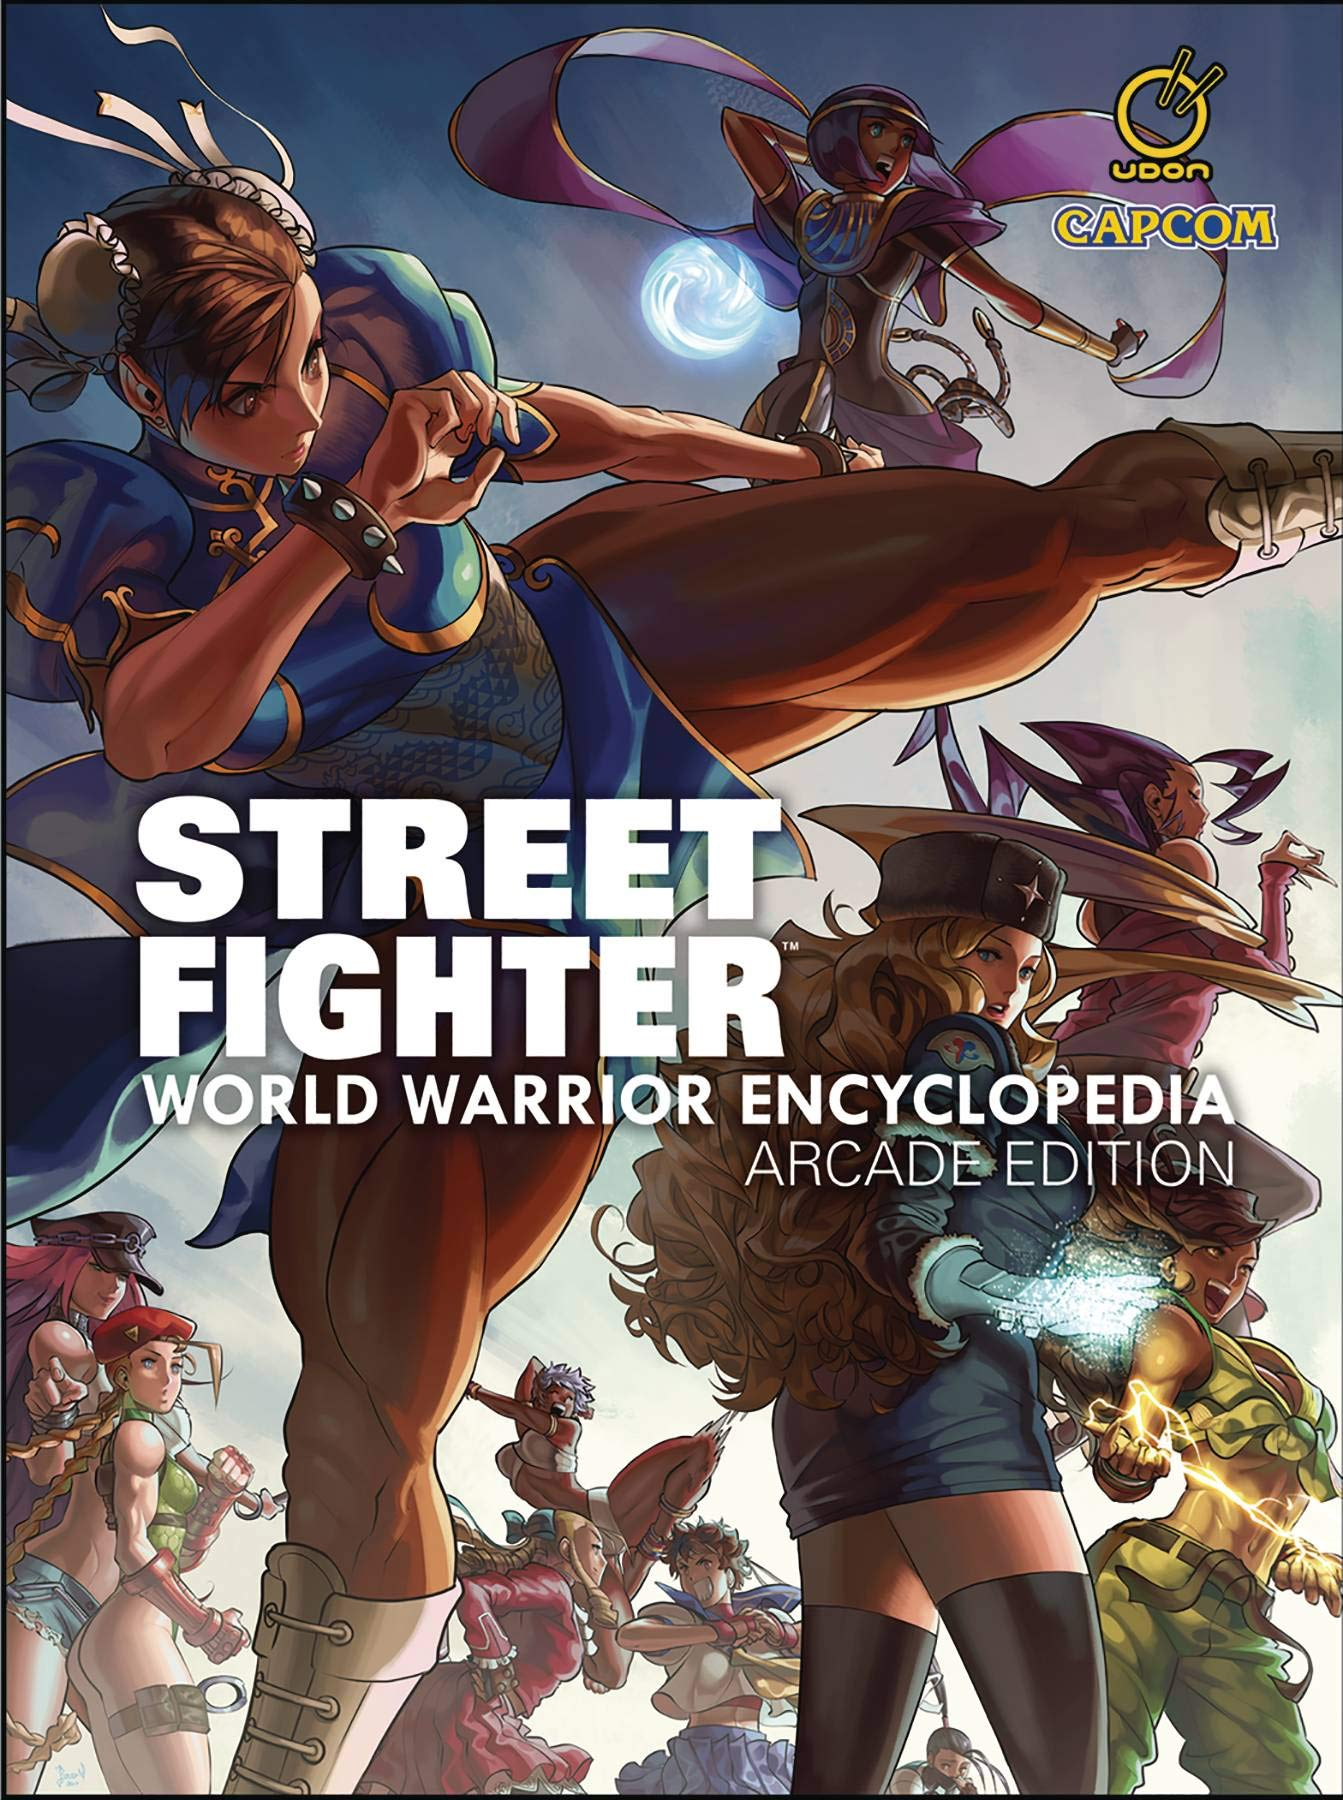 Street Fighter World Warrior Encyclopedia - Arcade Edition HC: Amazon.es: Moylan, Matt, UDON: Libros en idiomas extranjeros